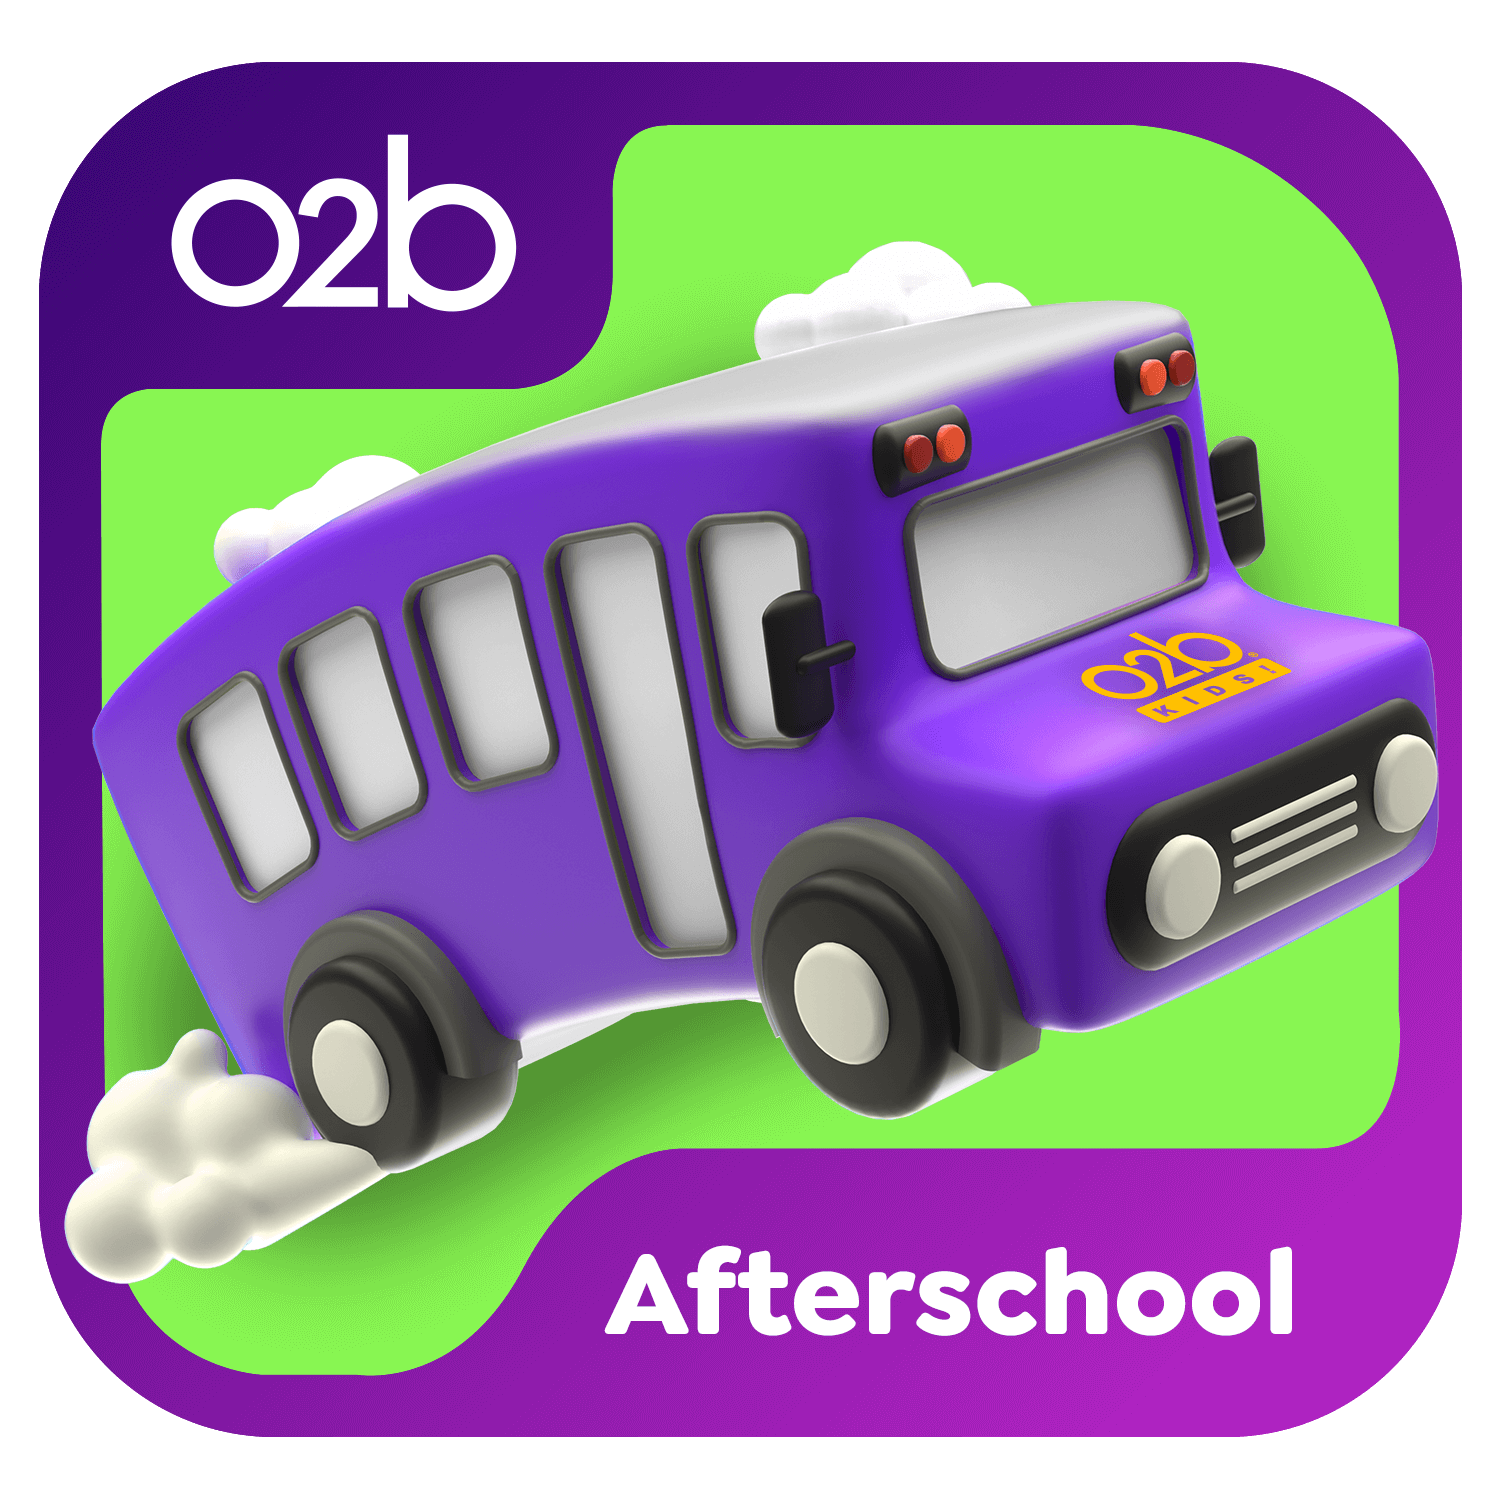 Purple bus with O2B Kids logo 3D illustration. Afterschool icon.